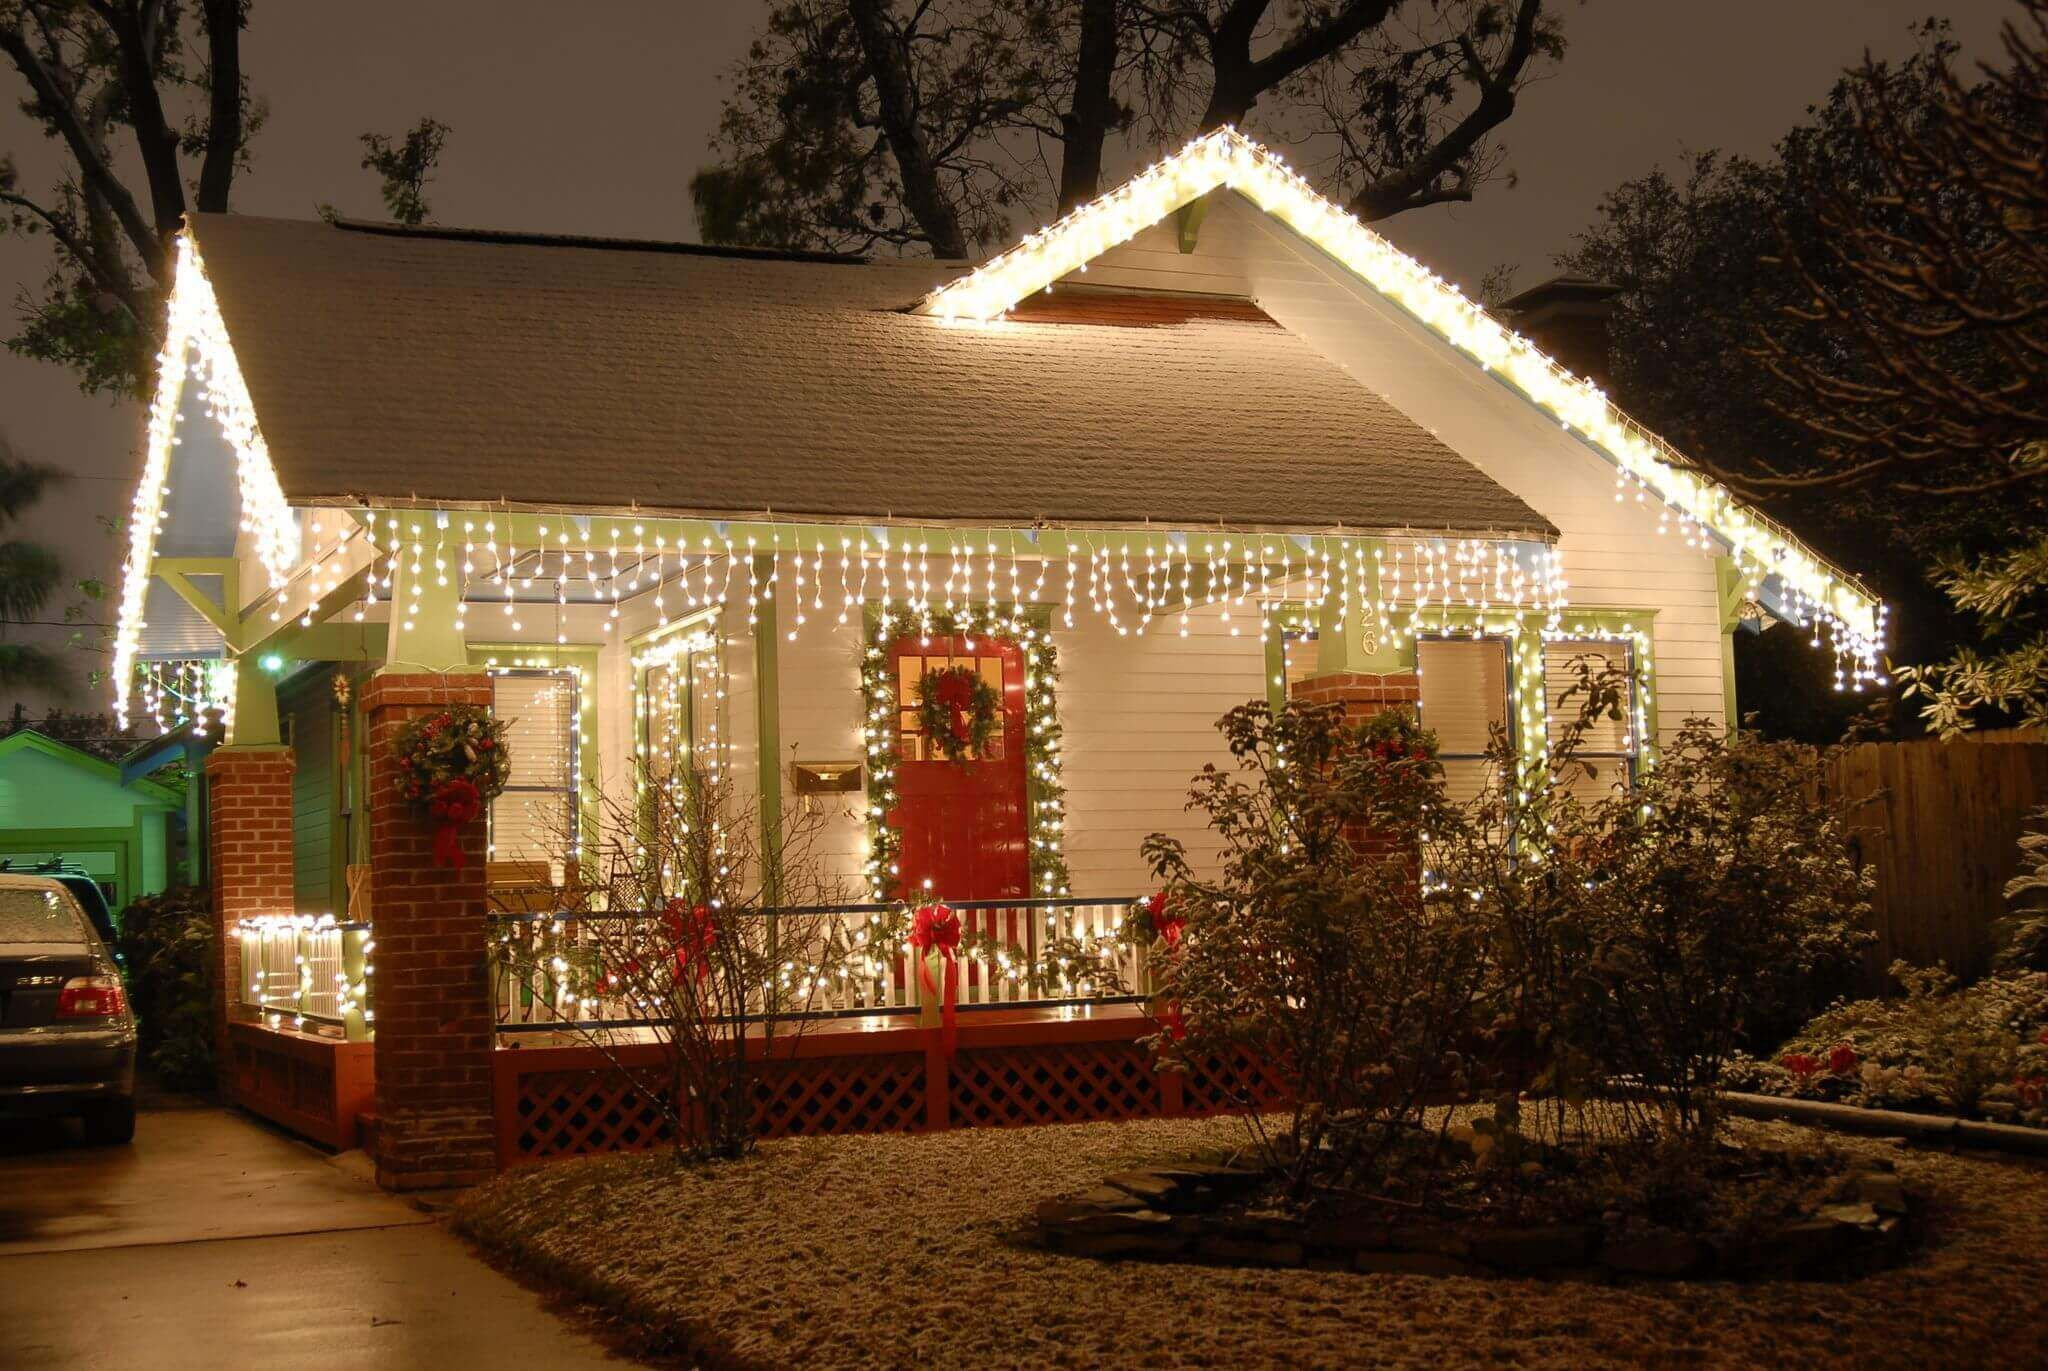 Pin By Exterior Interior Design On Diy Diwali Special Christmas Lights Outside Christmas House Lights Decorating With Christmas Lights,Interior Design For Home In India